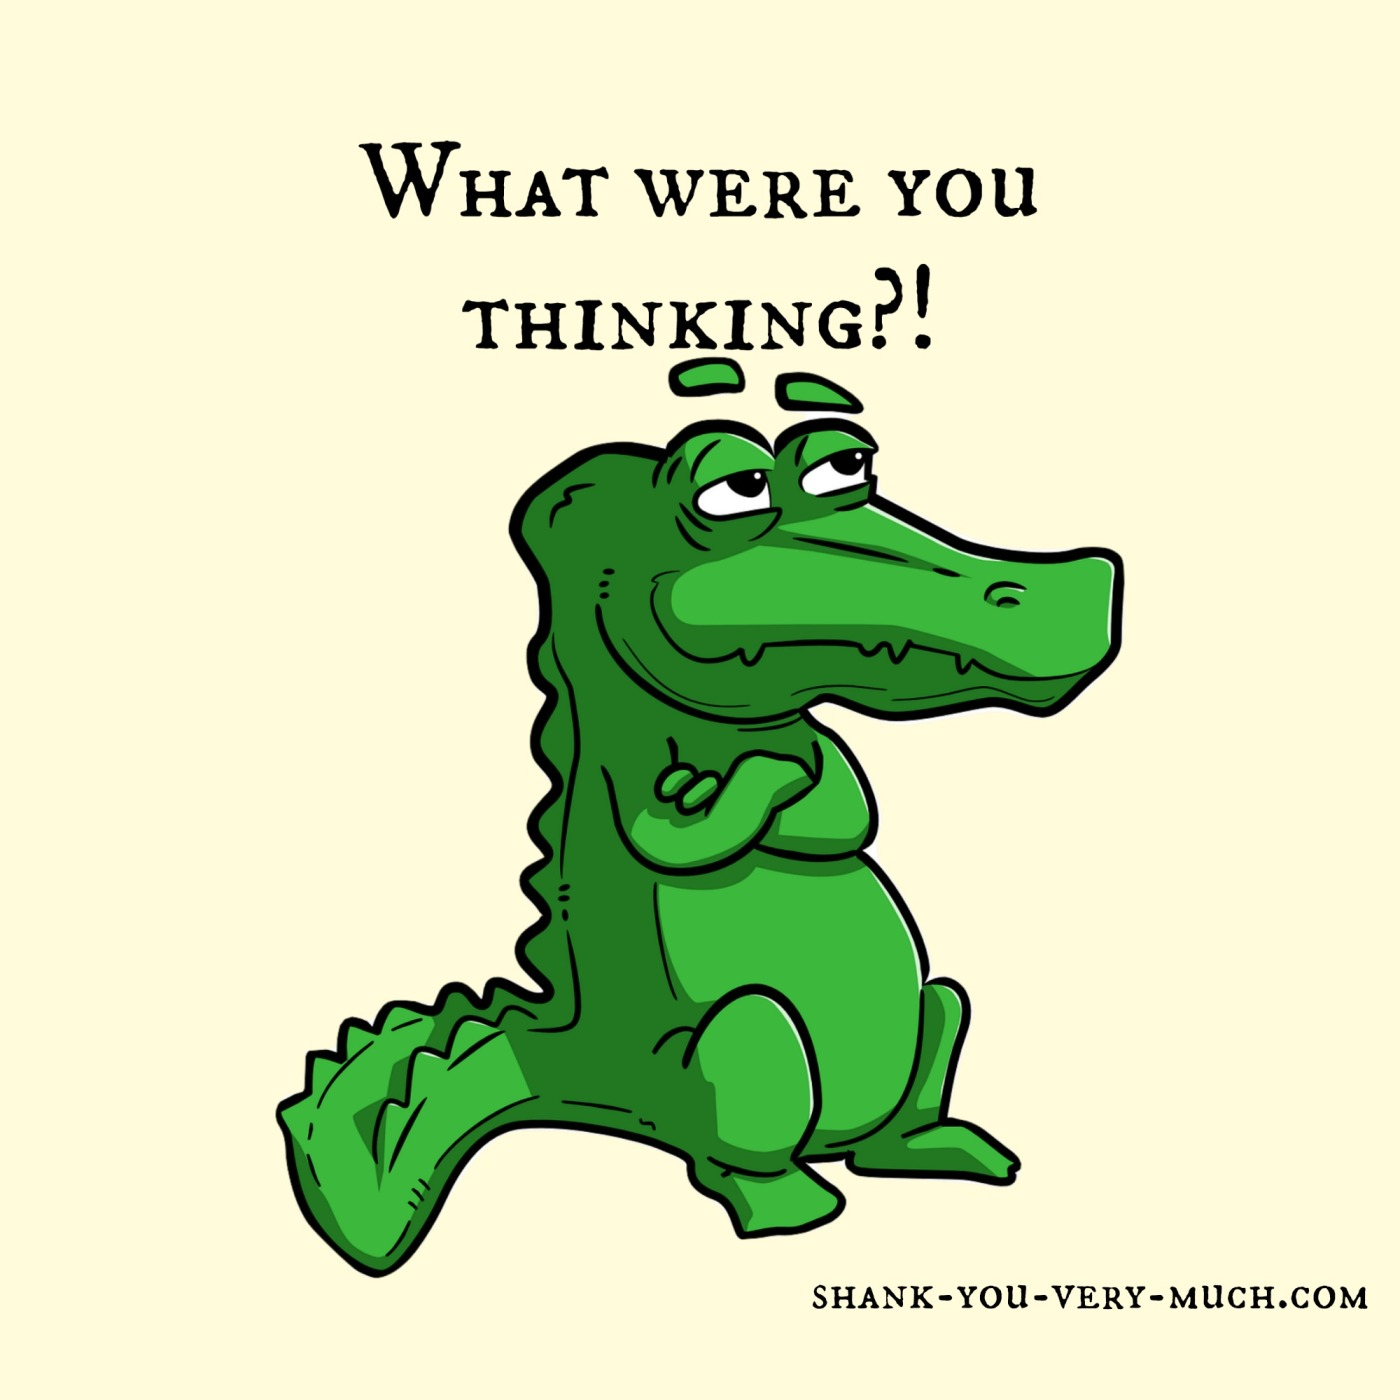 """A cartoon green alligator with his arms crossed over his chest and his eyebrows raised. The sarcastic caption above him reads """"What were you thinking?!"""""""